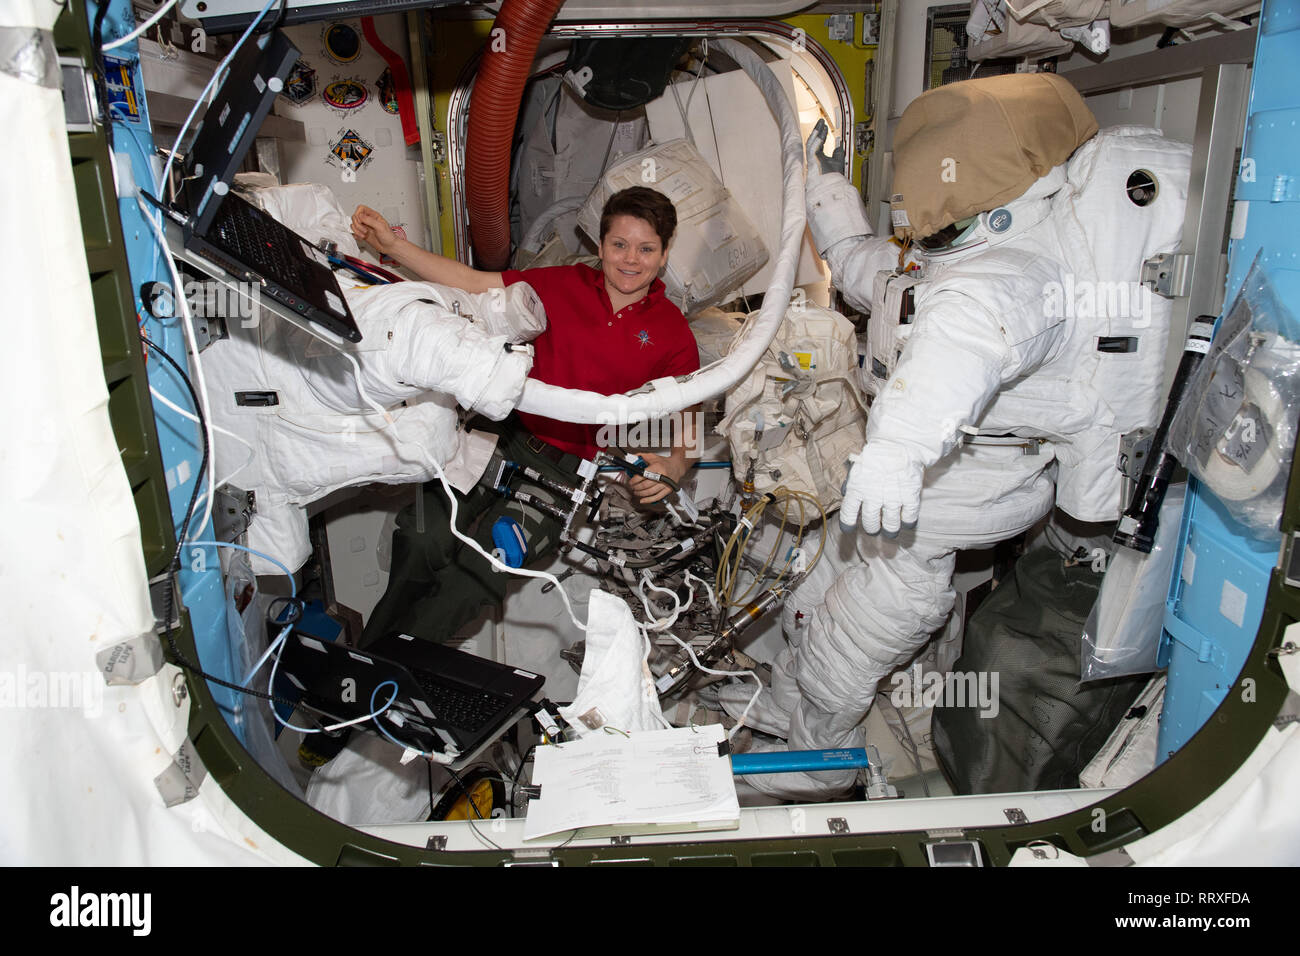 astronauts aboard the international space station - photo #24